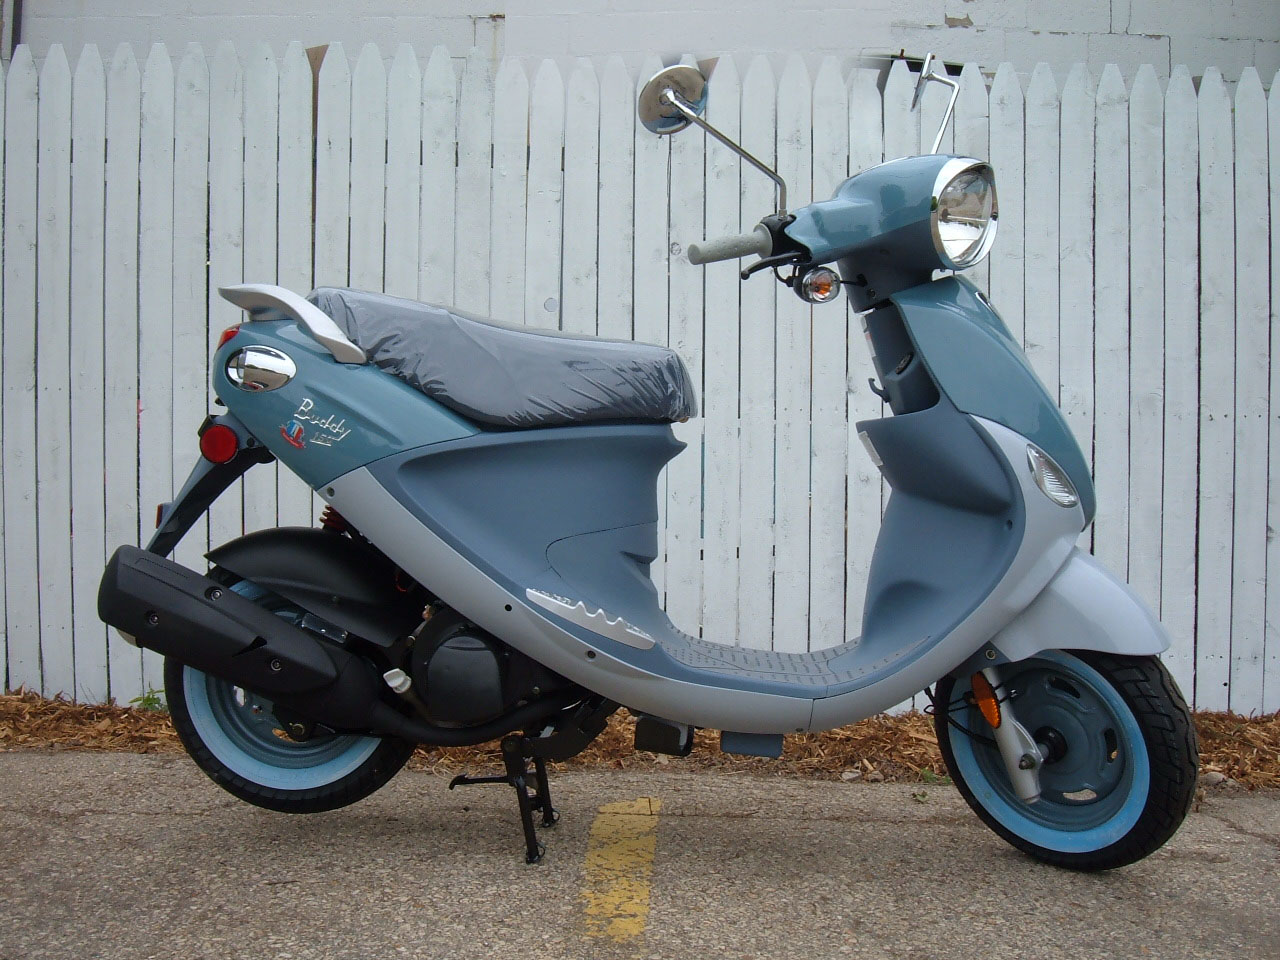 Genuine Scooter Buddy 50 2008 #6